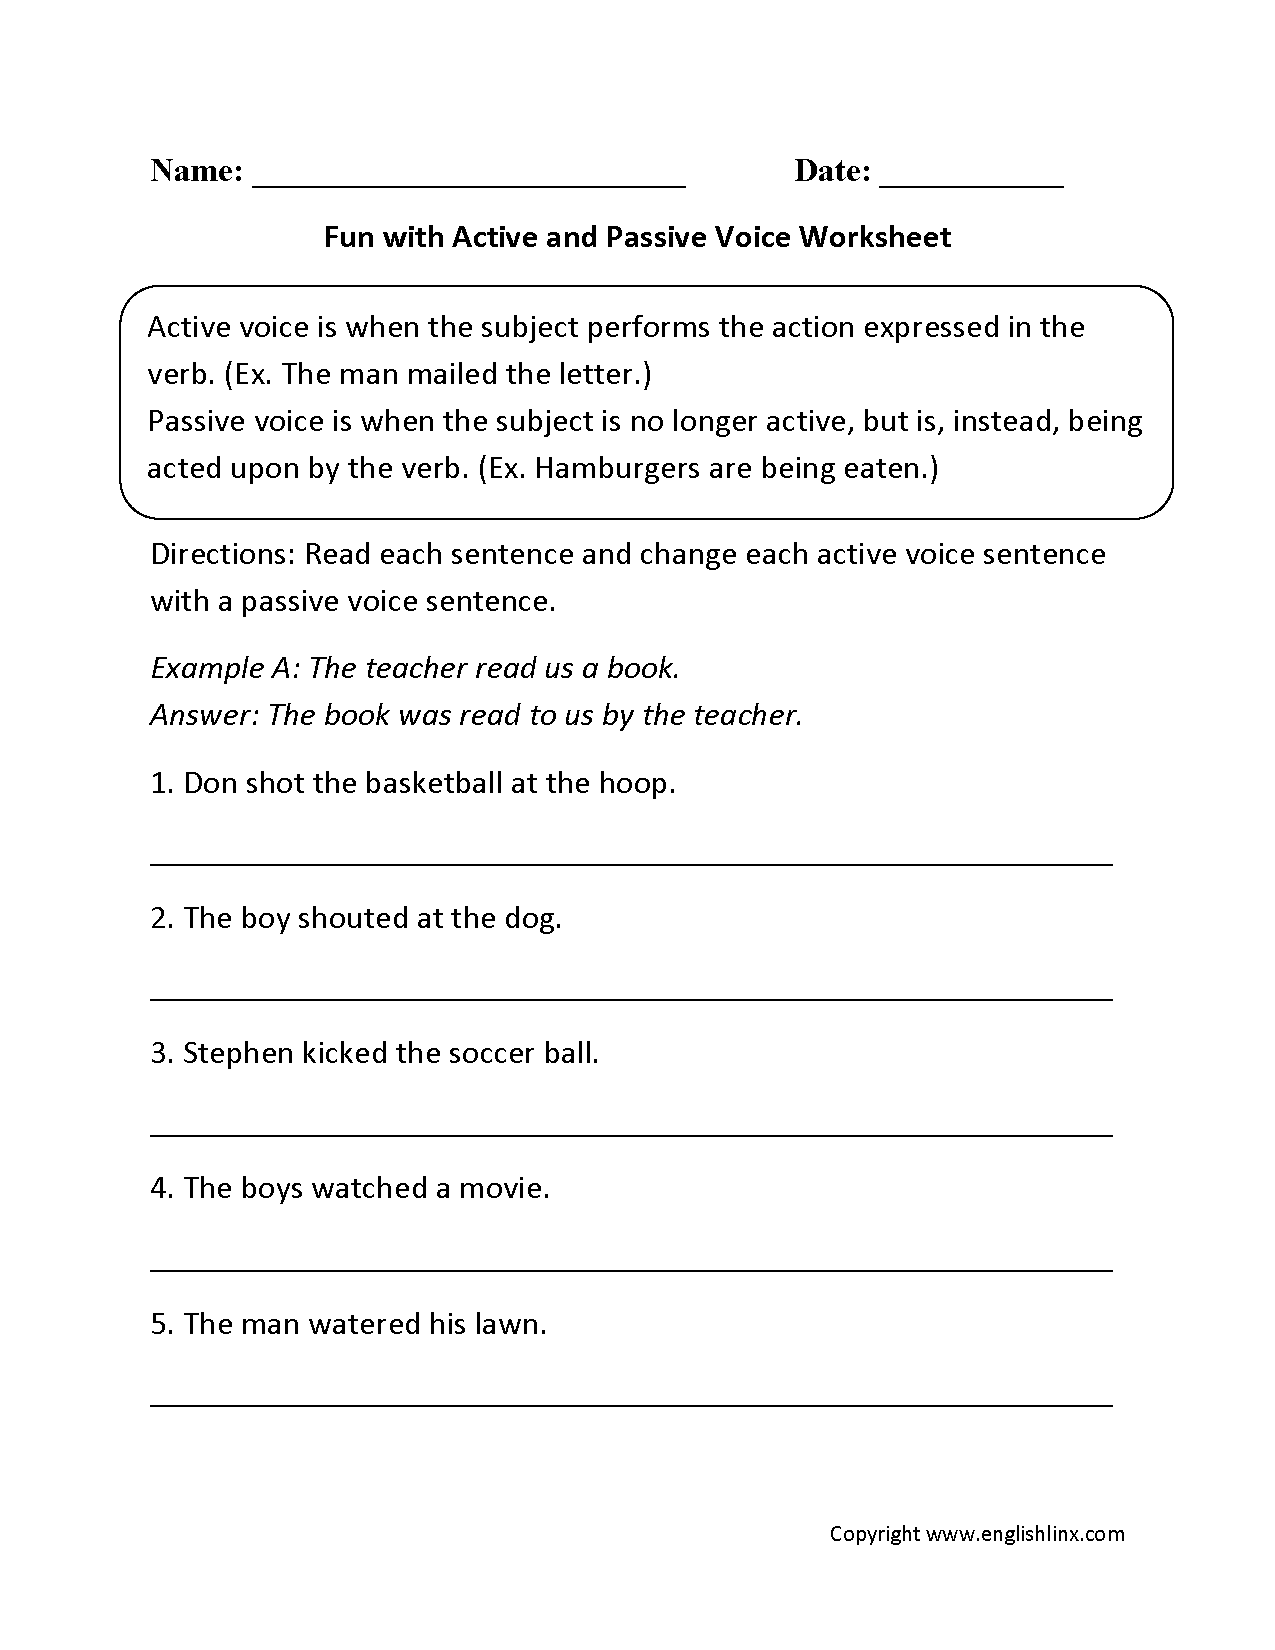 Worksheets 6th Grade English Worksheets englishlinx com active and passive voice worksheets worksheets